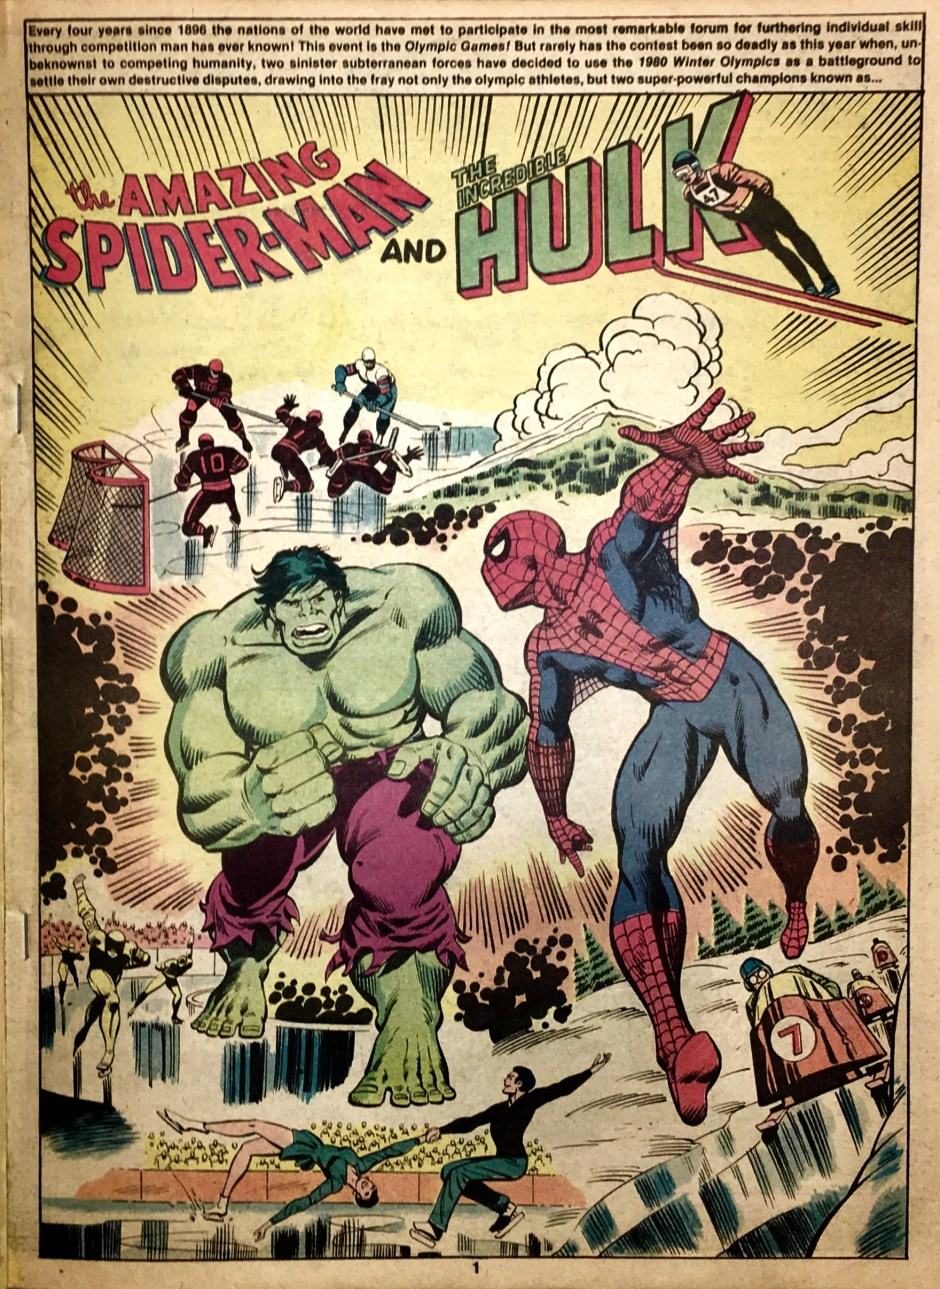 Spiderman vs Hulk at the Winter Olympics_2